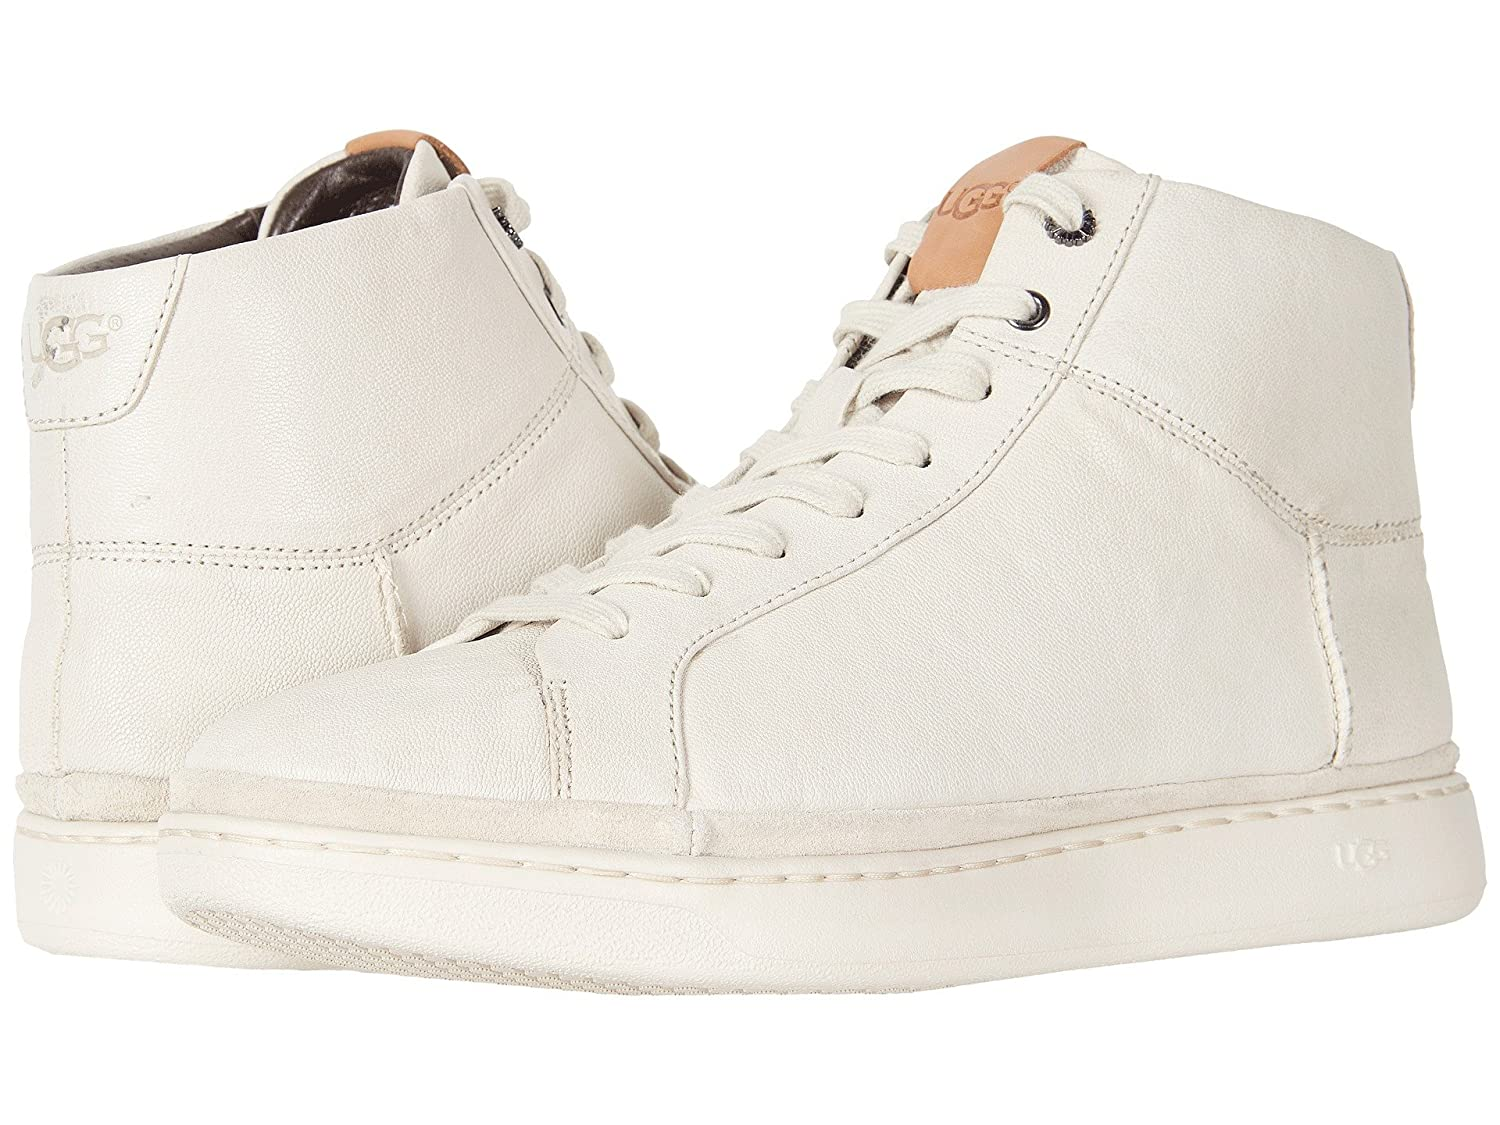 [UGG(アグ)] メンズレースアップシューズスニーカー靴 Brecken Lace High Parchment Leather 9 (27cm) D - Medium B07DP85WWX